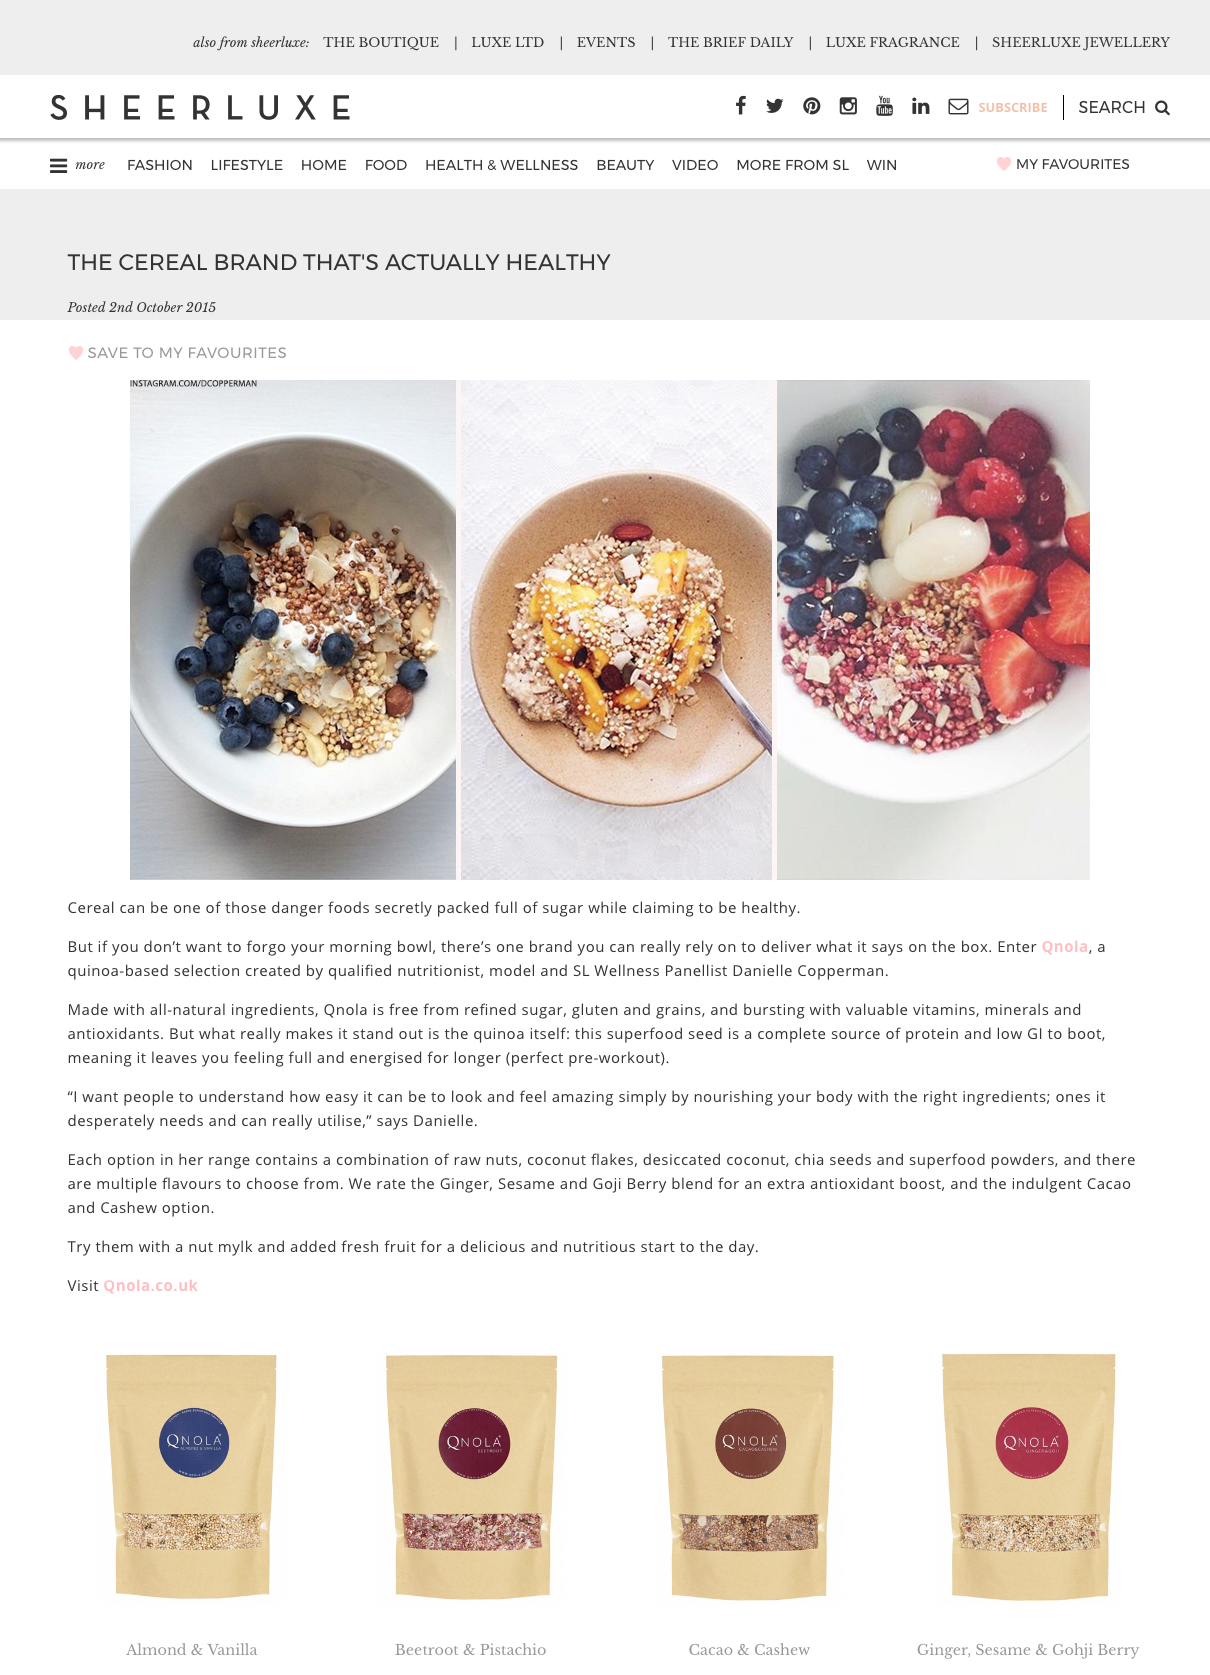 screencapture-sheerluxe-2015-10-02-cereal-brand-thats-actually-healthy-1488461373962.png